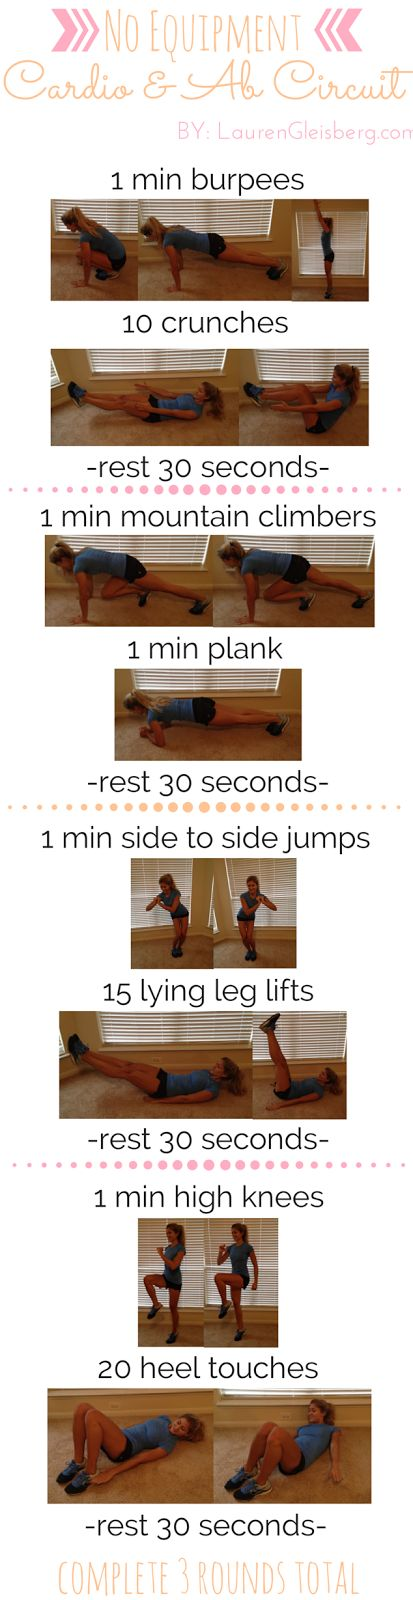 WORKOUT WITH ME WEDNESDAY: No Equipment Cardio & Ab Circuit